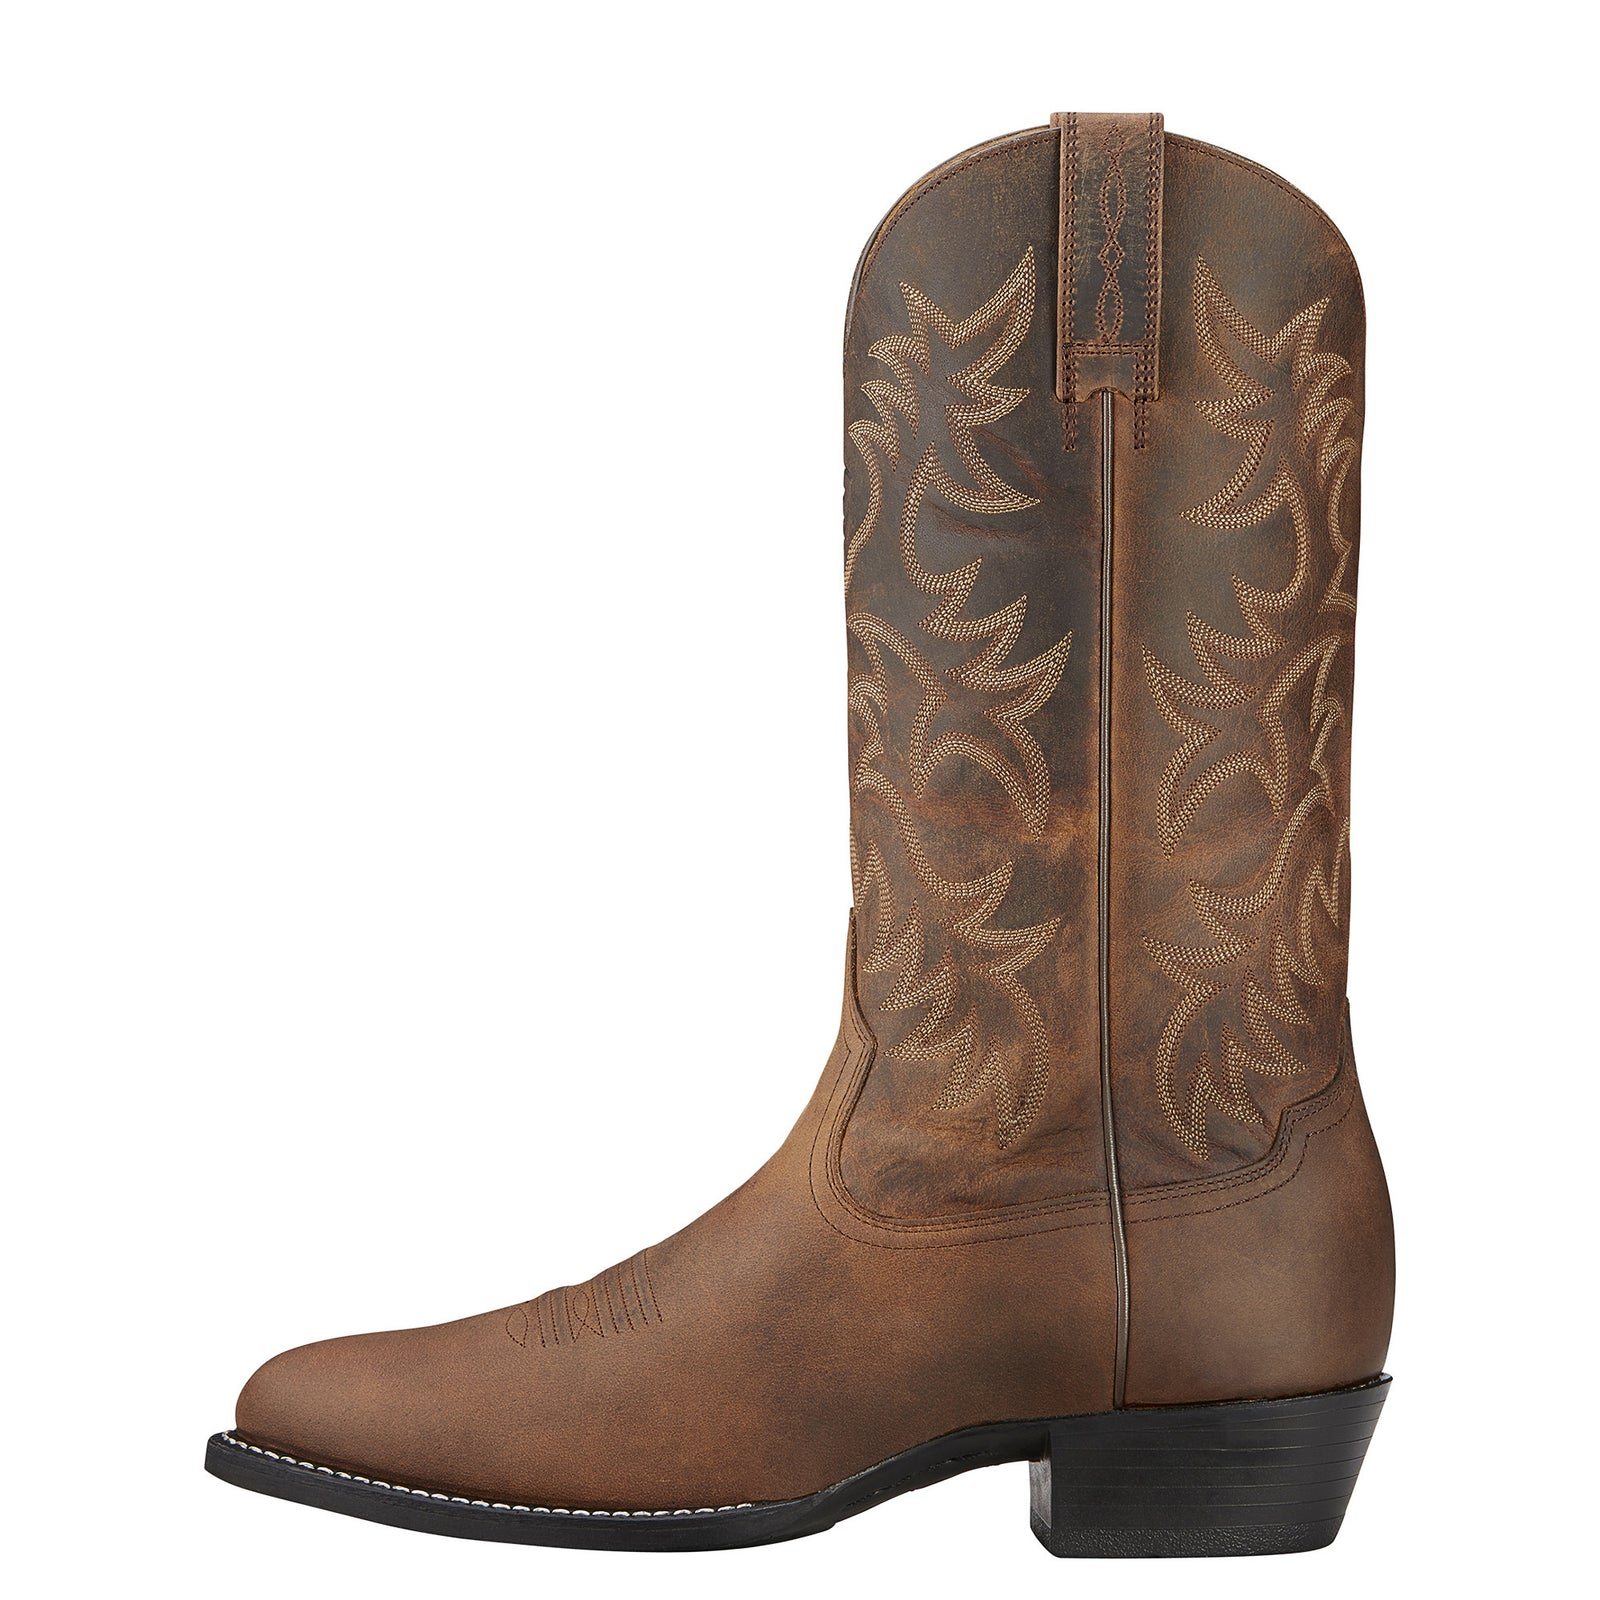 Ariat Men's Heritage R Toe Distressed Brown Western Boots - VaqueroBoots.com - 3